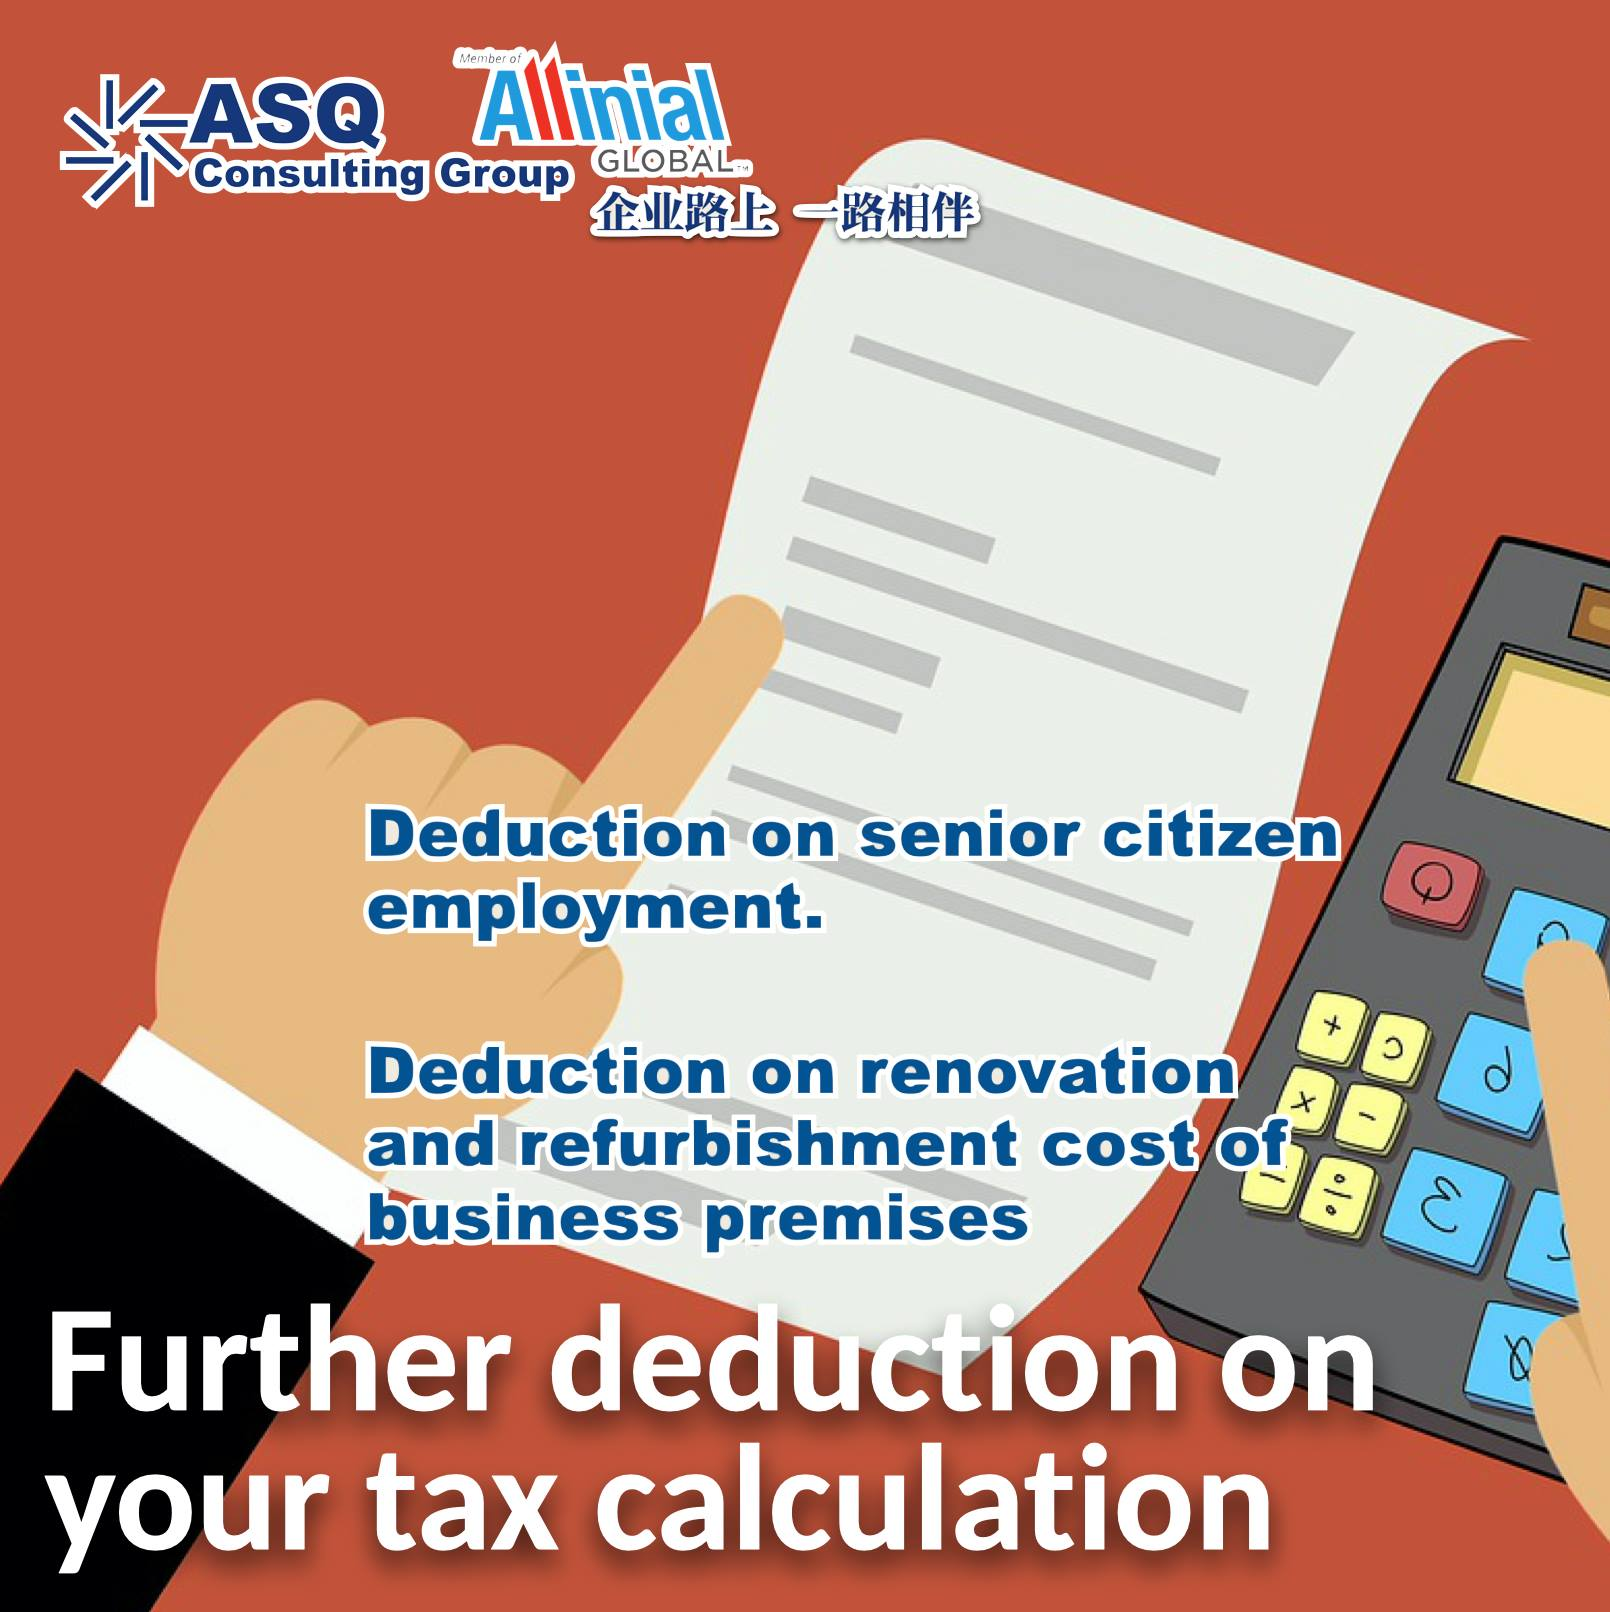 Further deduction on your tax calculation!